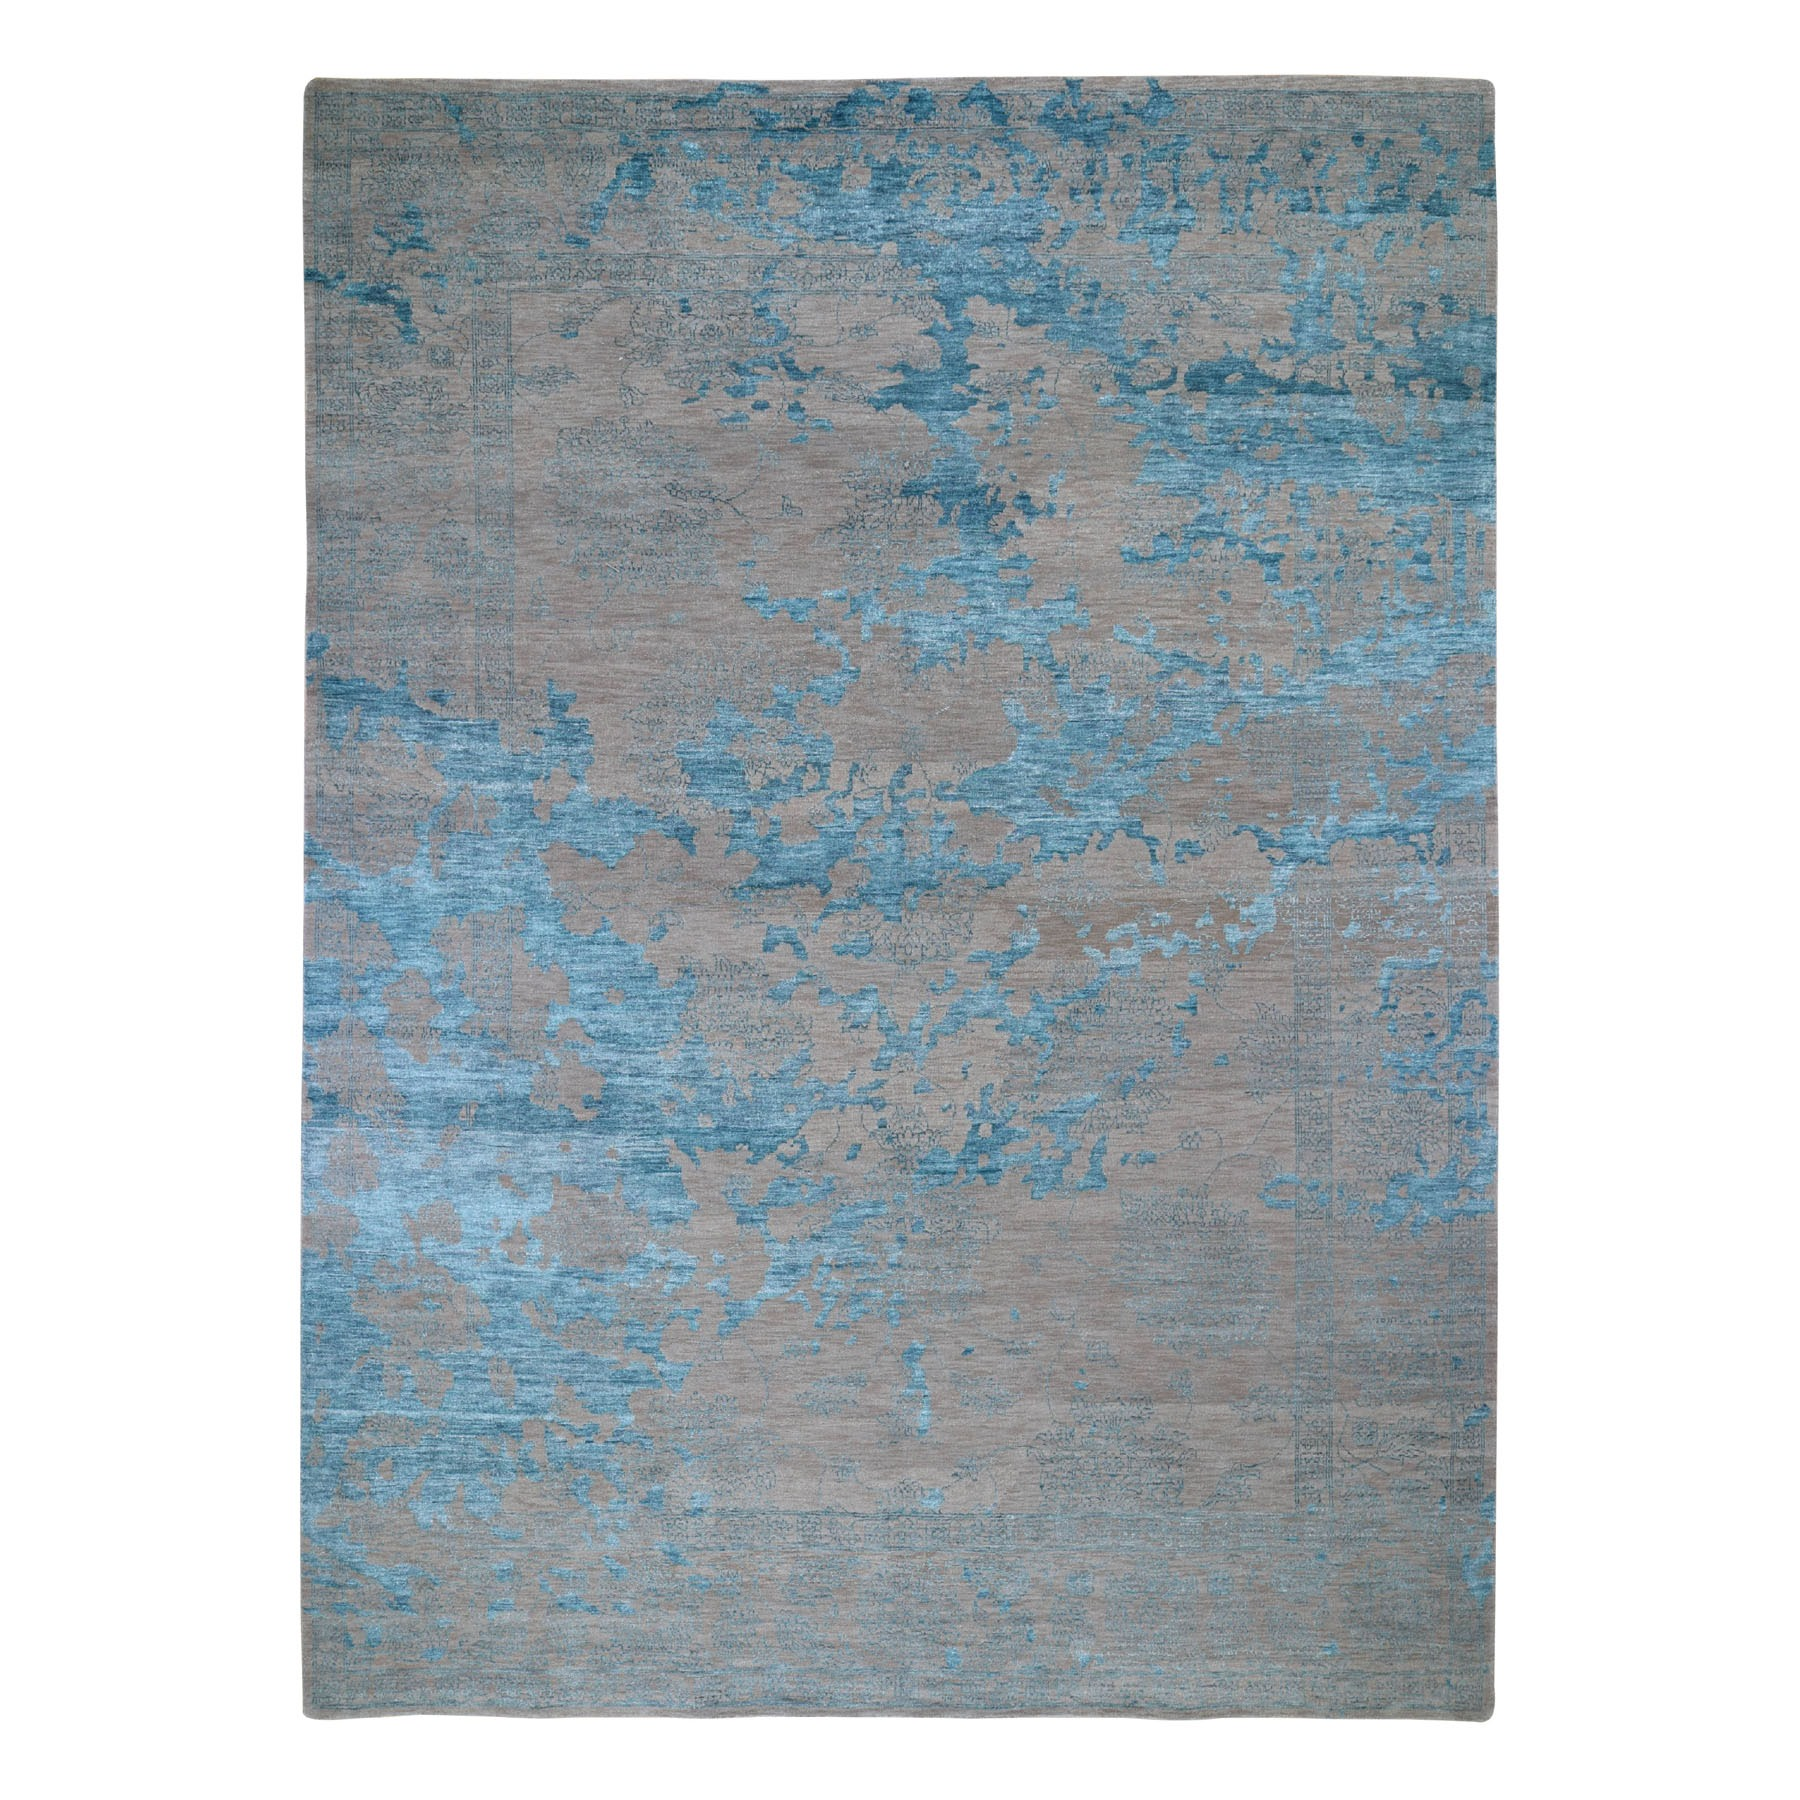 "8'10""x12' Aquamarine Tone On Tone Stained Design Hand Knotted Oriental Rug"